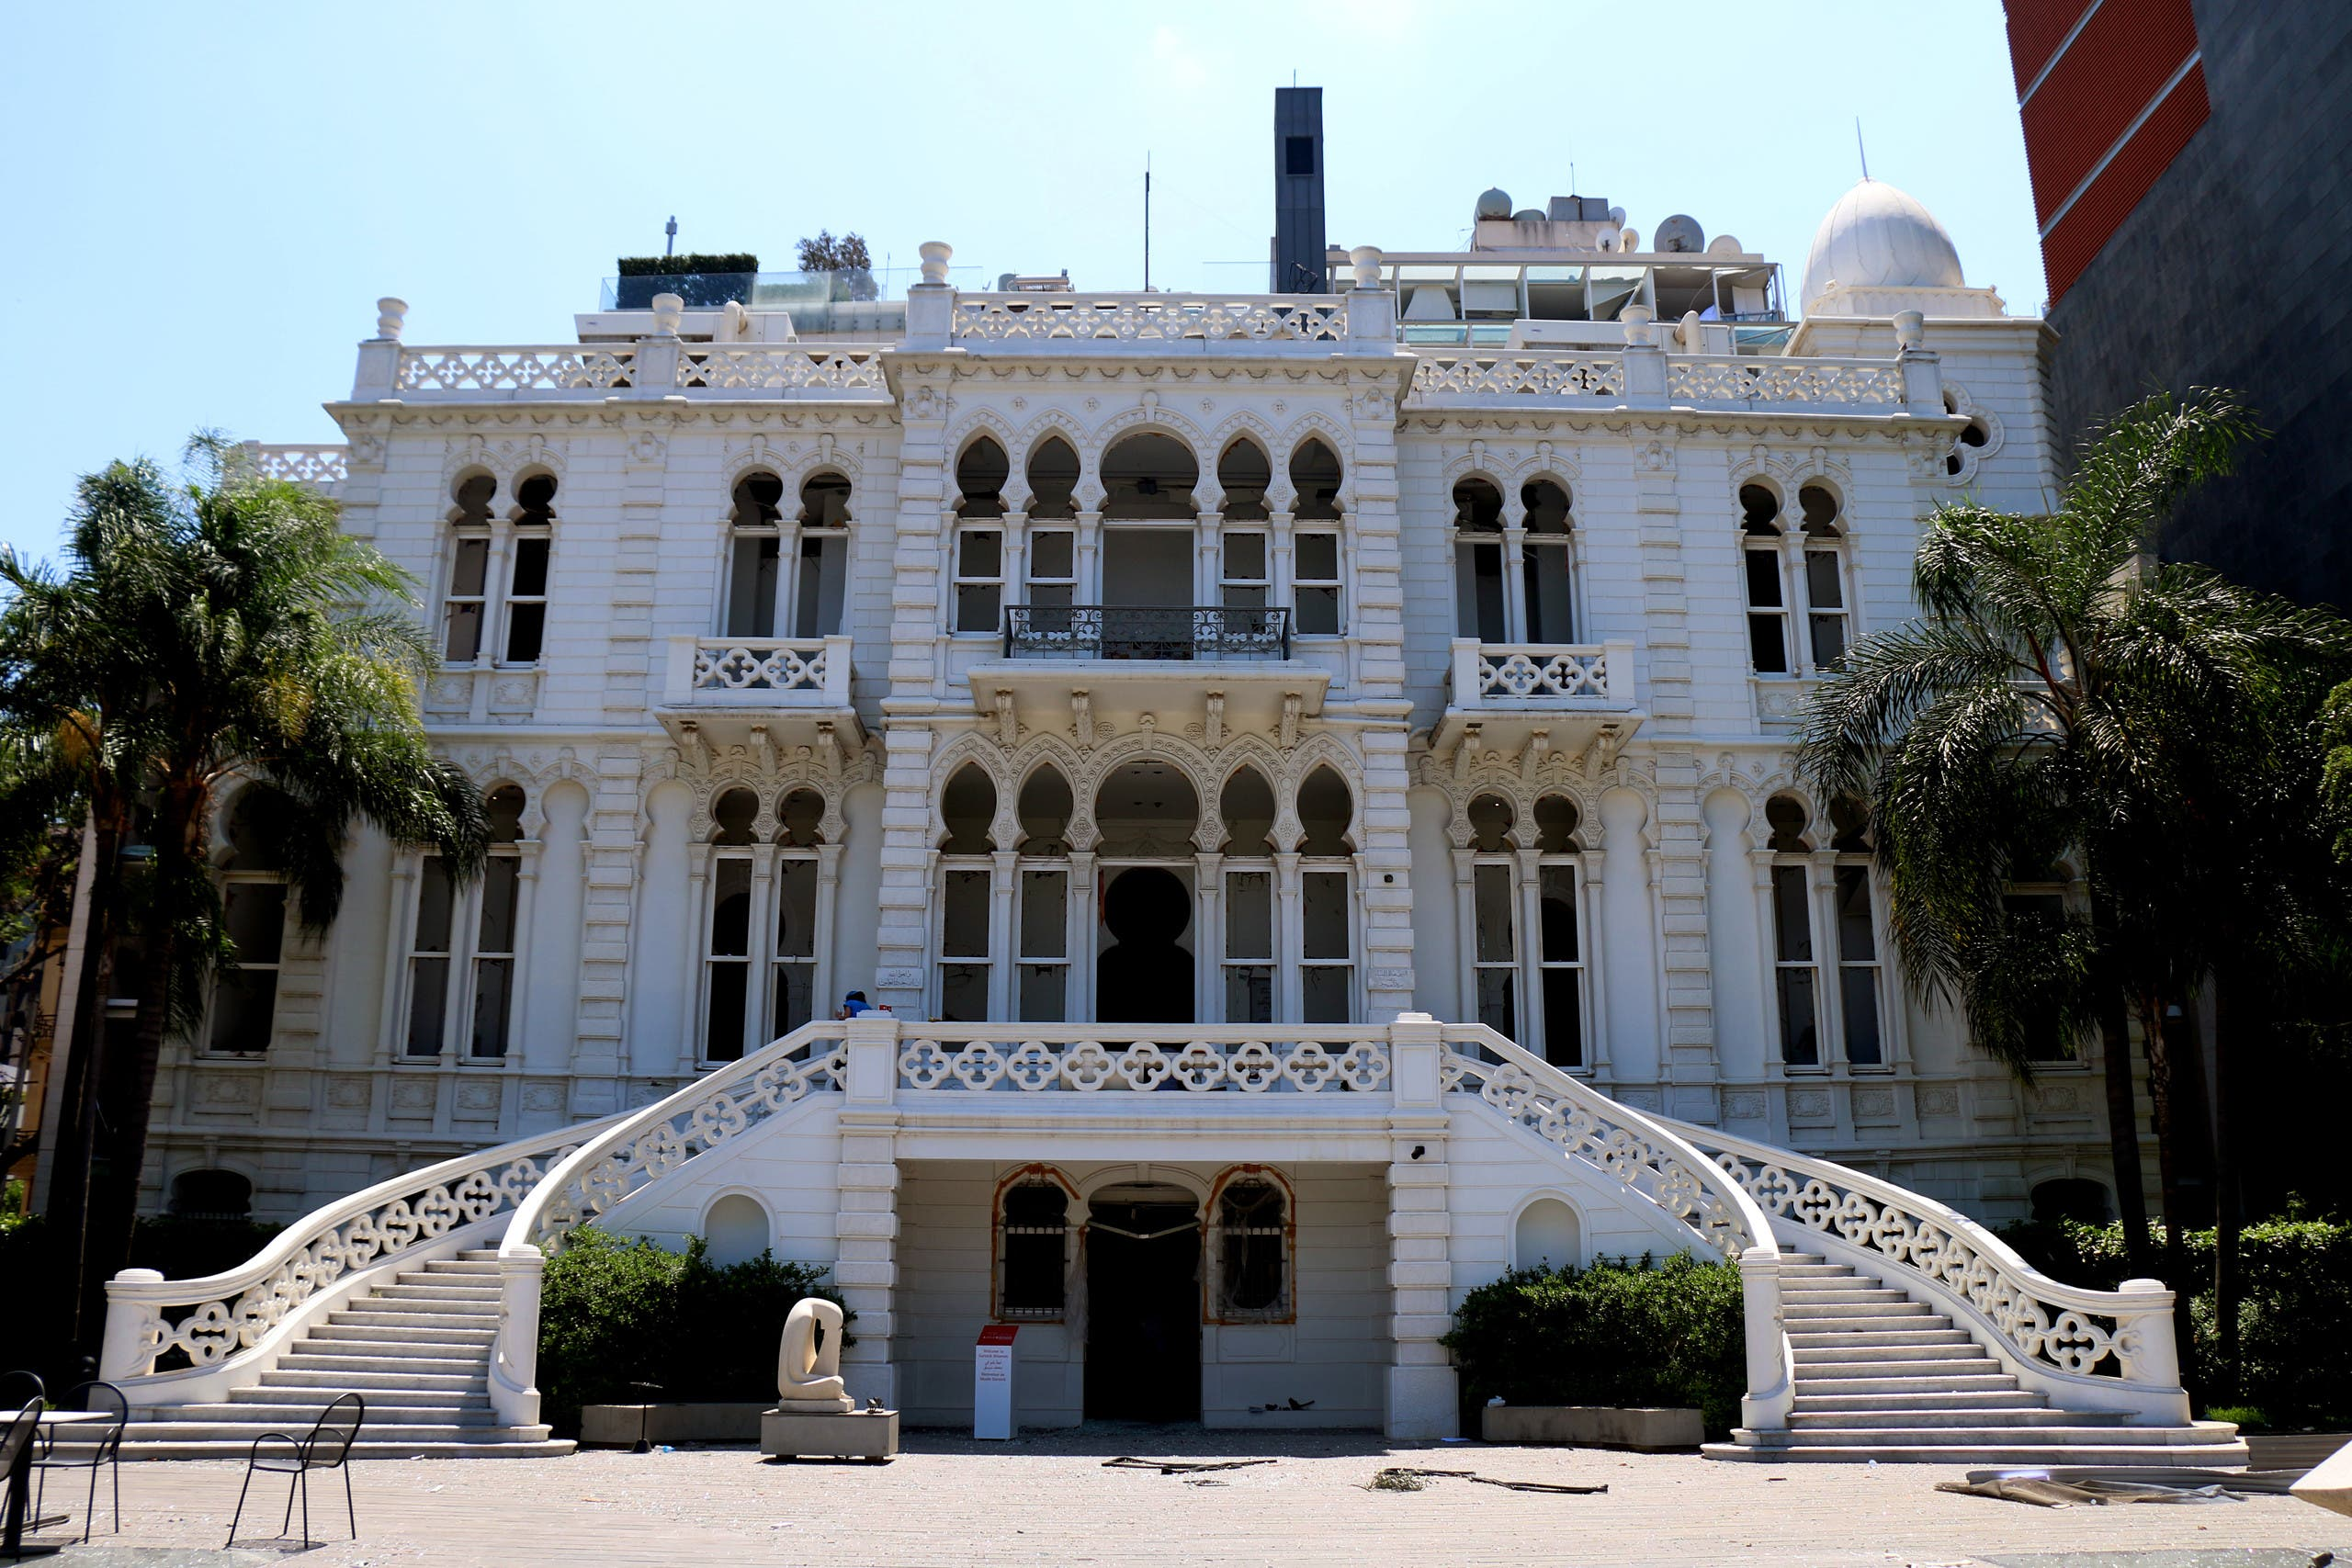 The Sursock Museum was damaged in the Beirut port explosion. Here it is shown with its windows blown out following the blast. (Rowina Bou Harb)